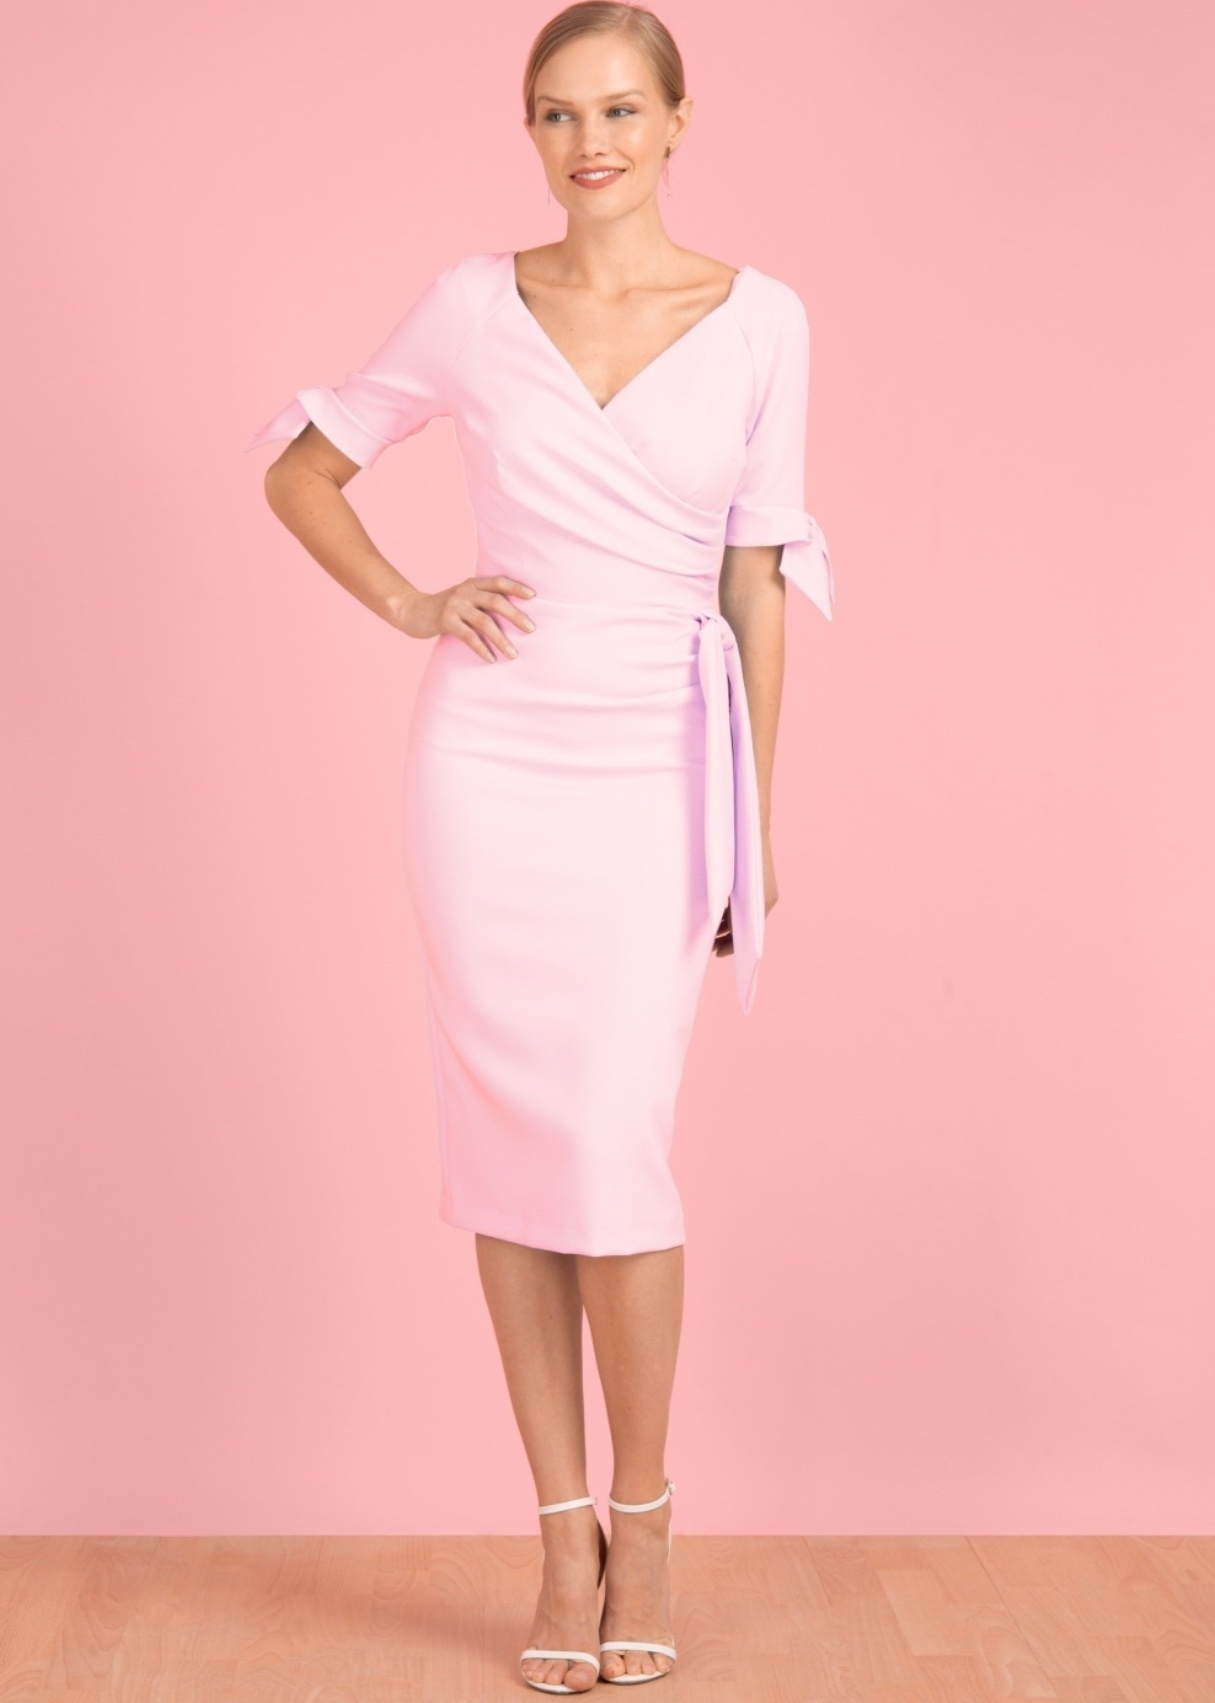 Hourglass Dress with Bows on Sleeves in Pale Pink PDCHourglass